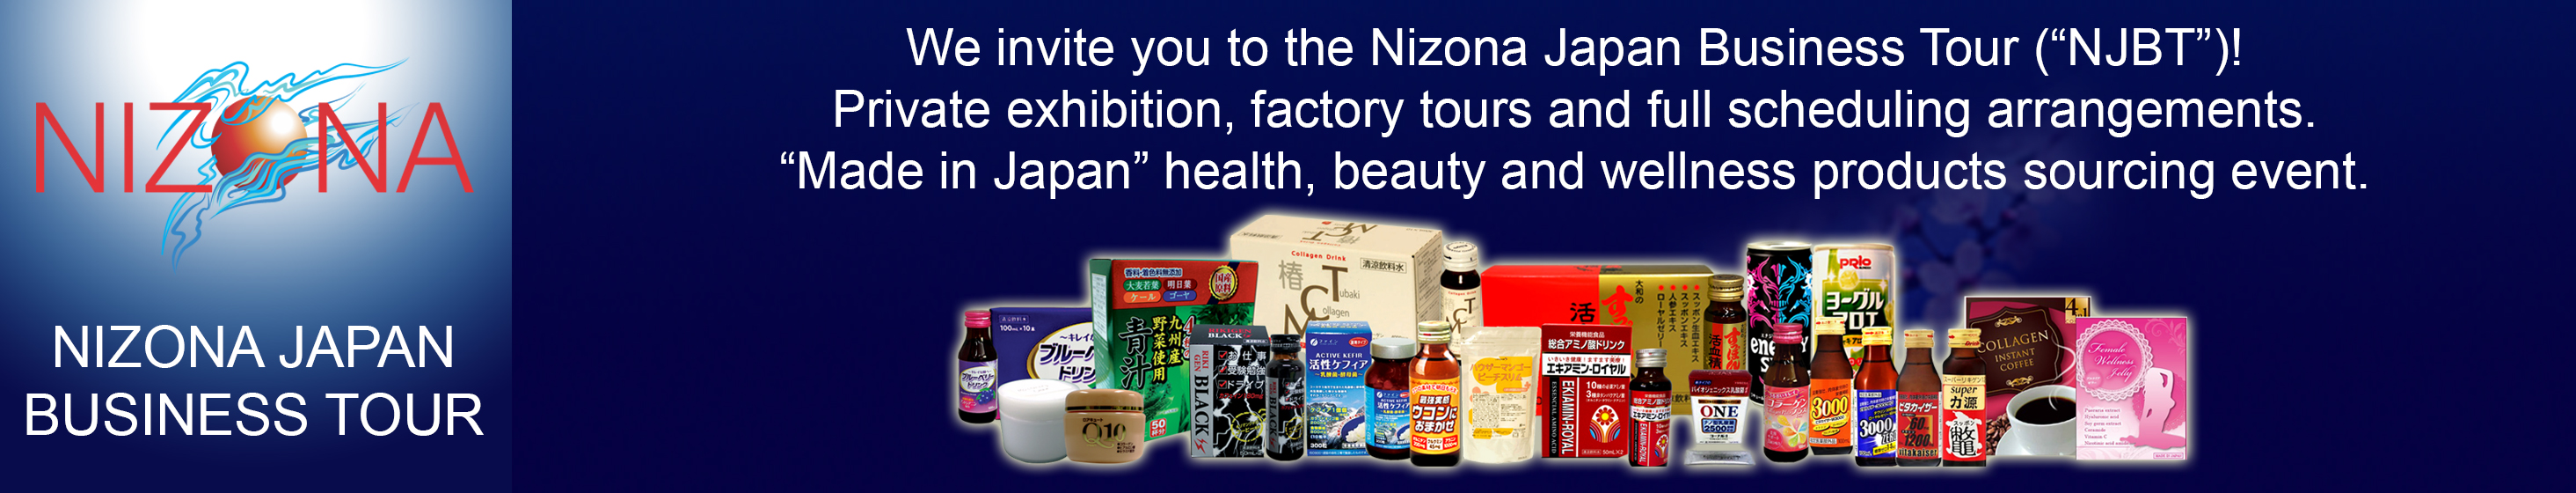 Nizona Corporation, Japan